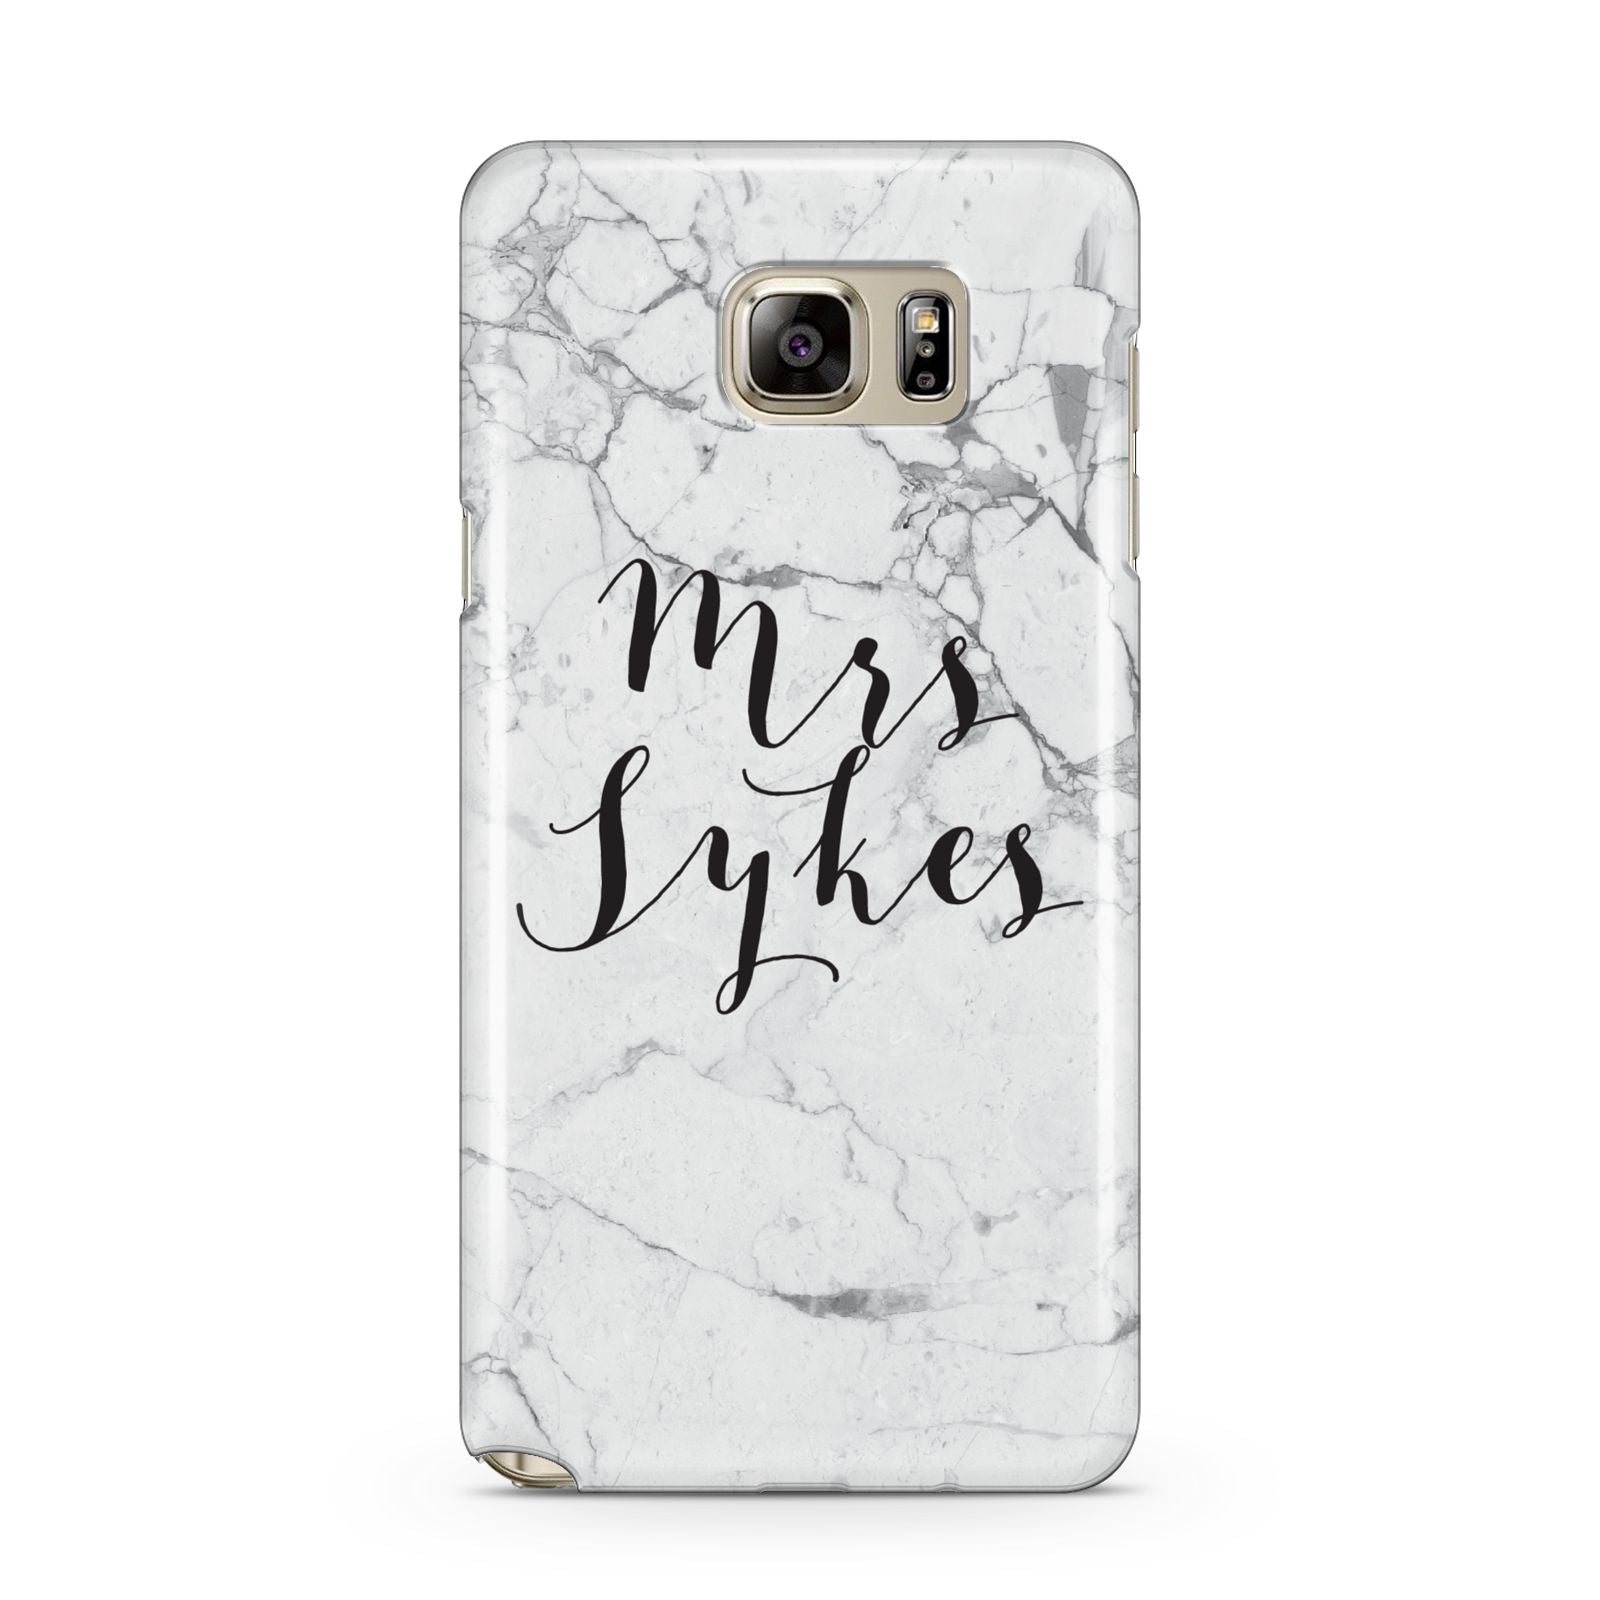 Surname Personalised Marble Samsung Galaxy Note 5 Case